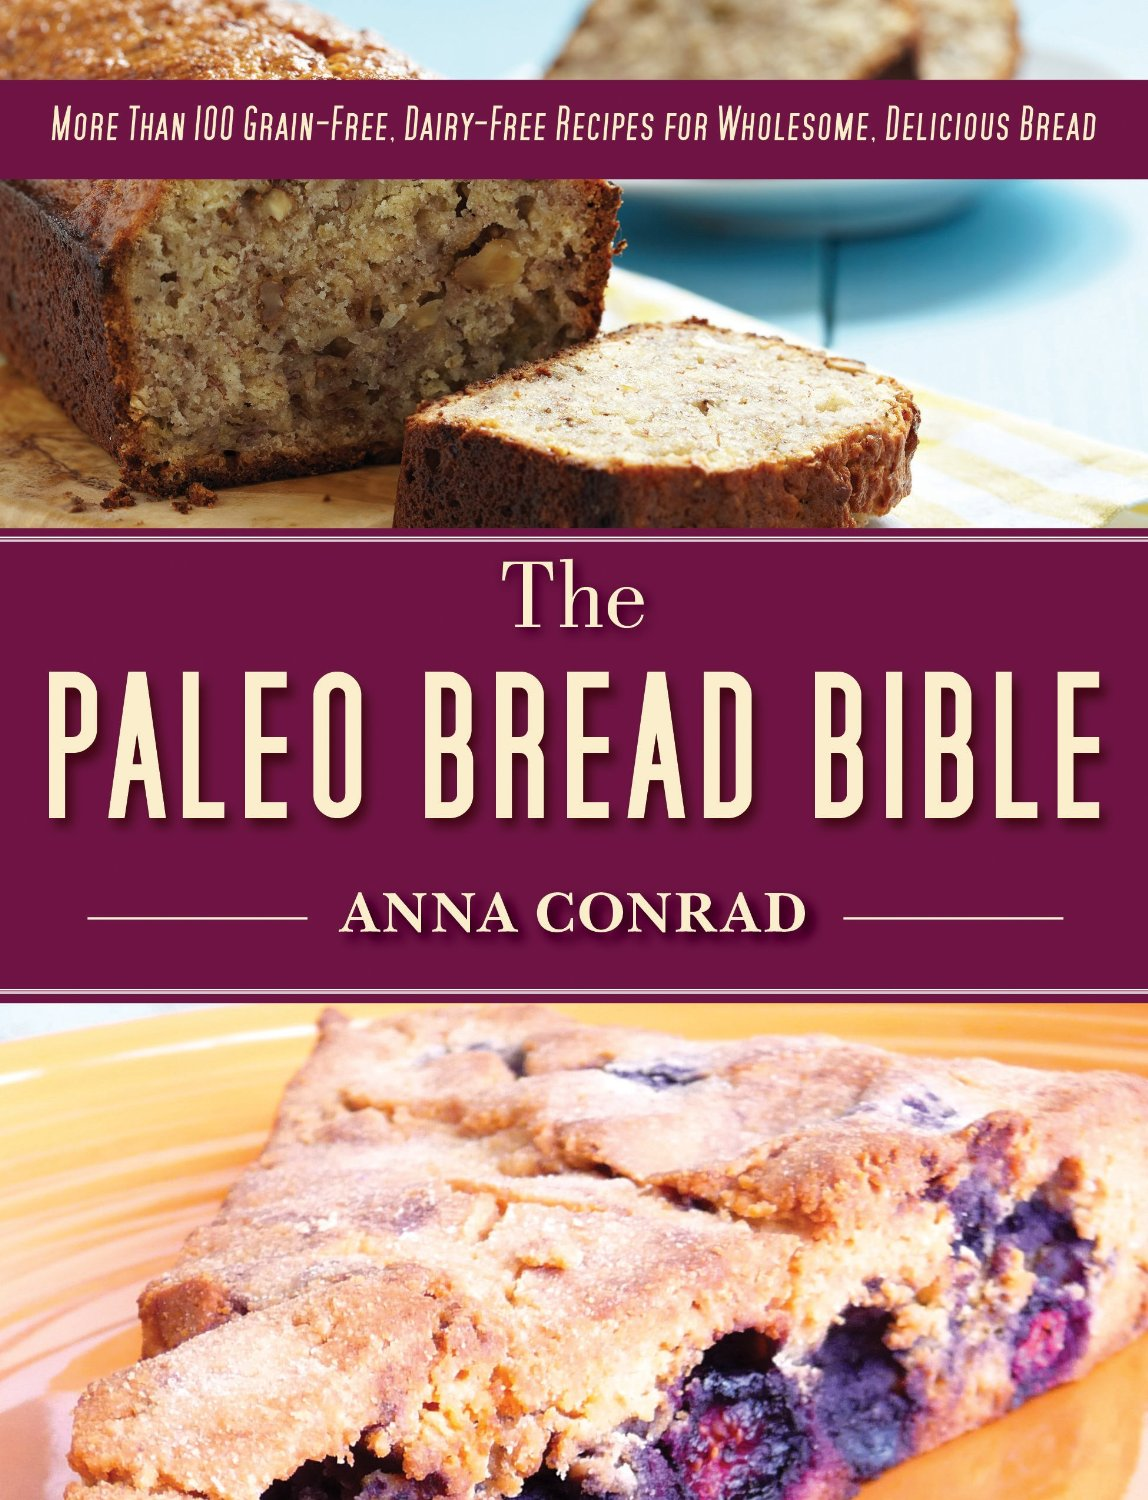 The Paleo Bread Bible: More Than 100 Grain-Free, Dairy-Free Recipes for Wholesome, Delicious Bread (repost)